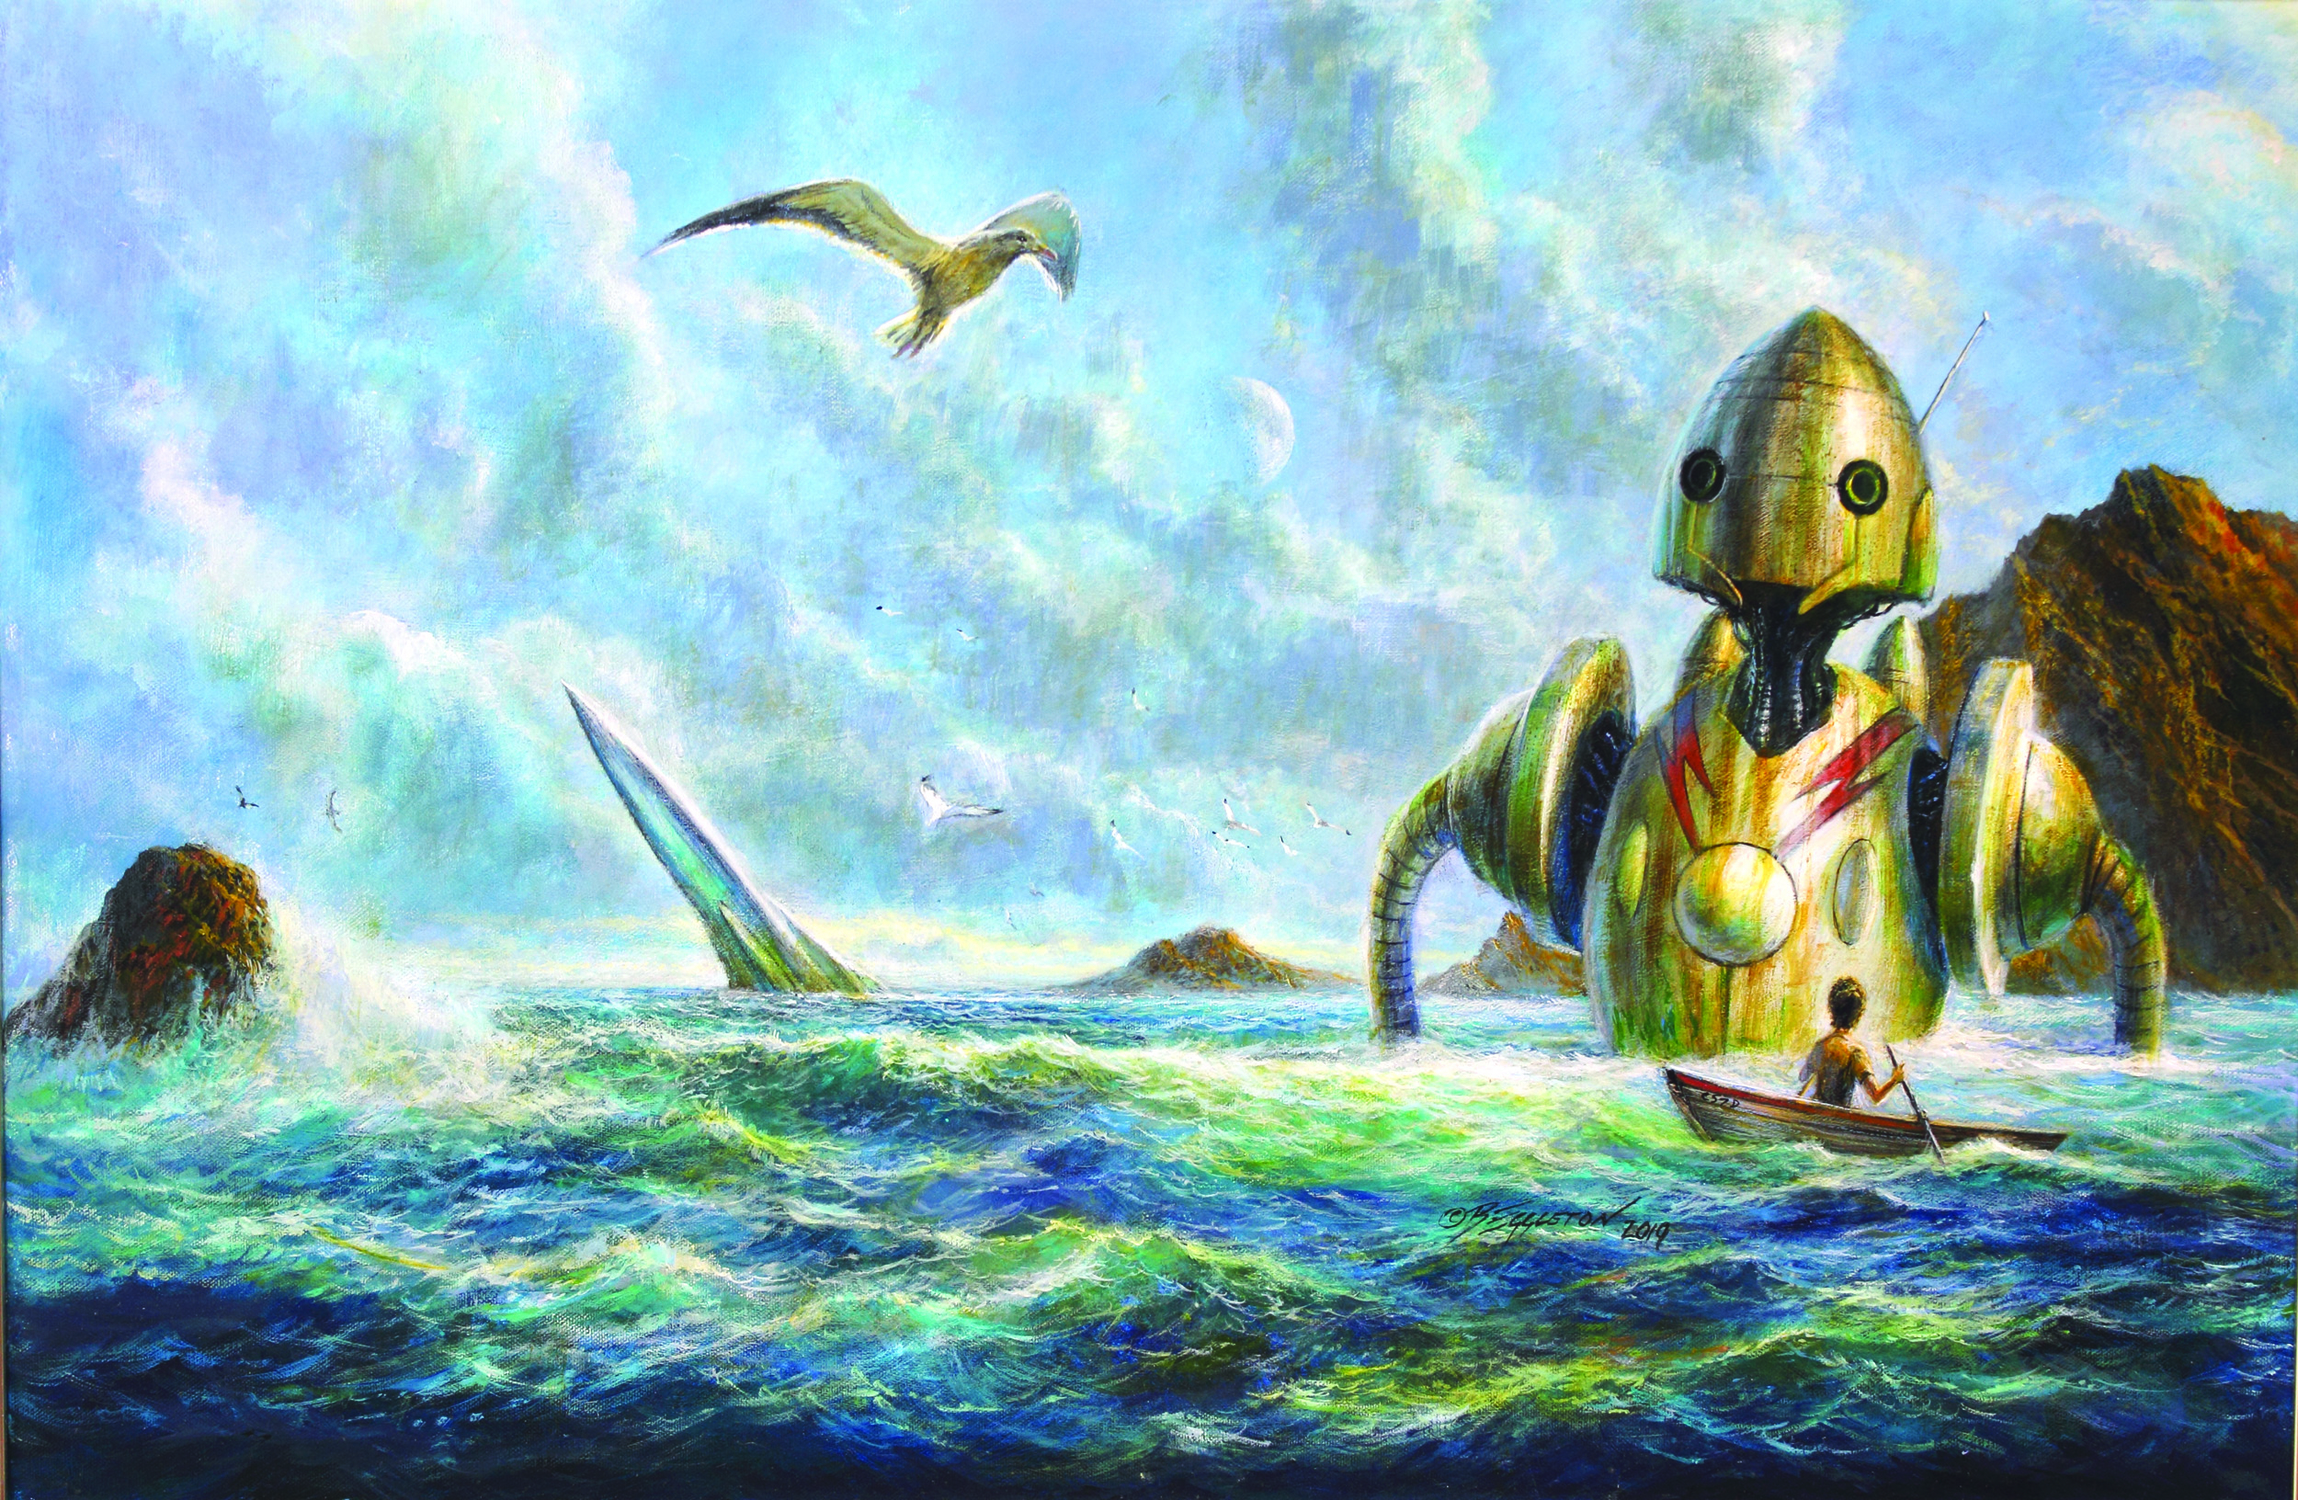 ANOTHER ONE OF OUR ROBOTS IS MISSING Artwork by Bob Eggleton